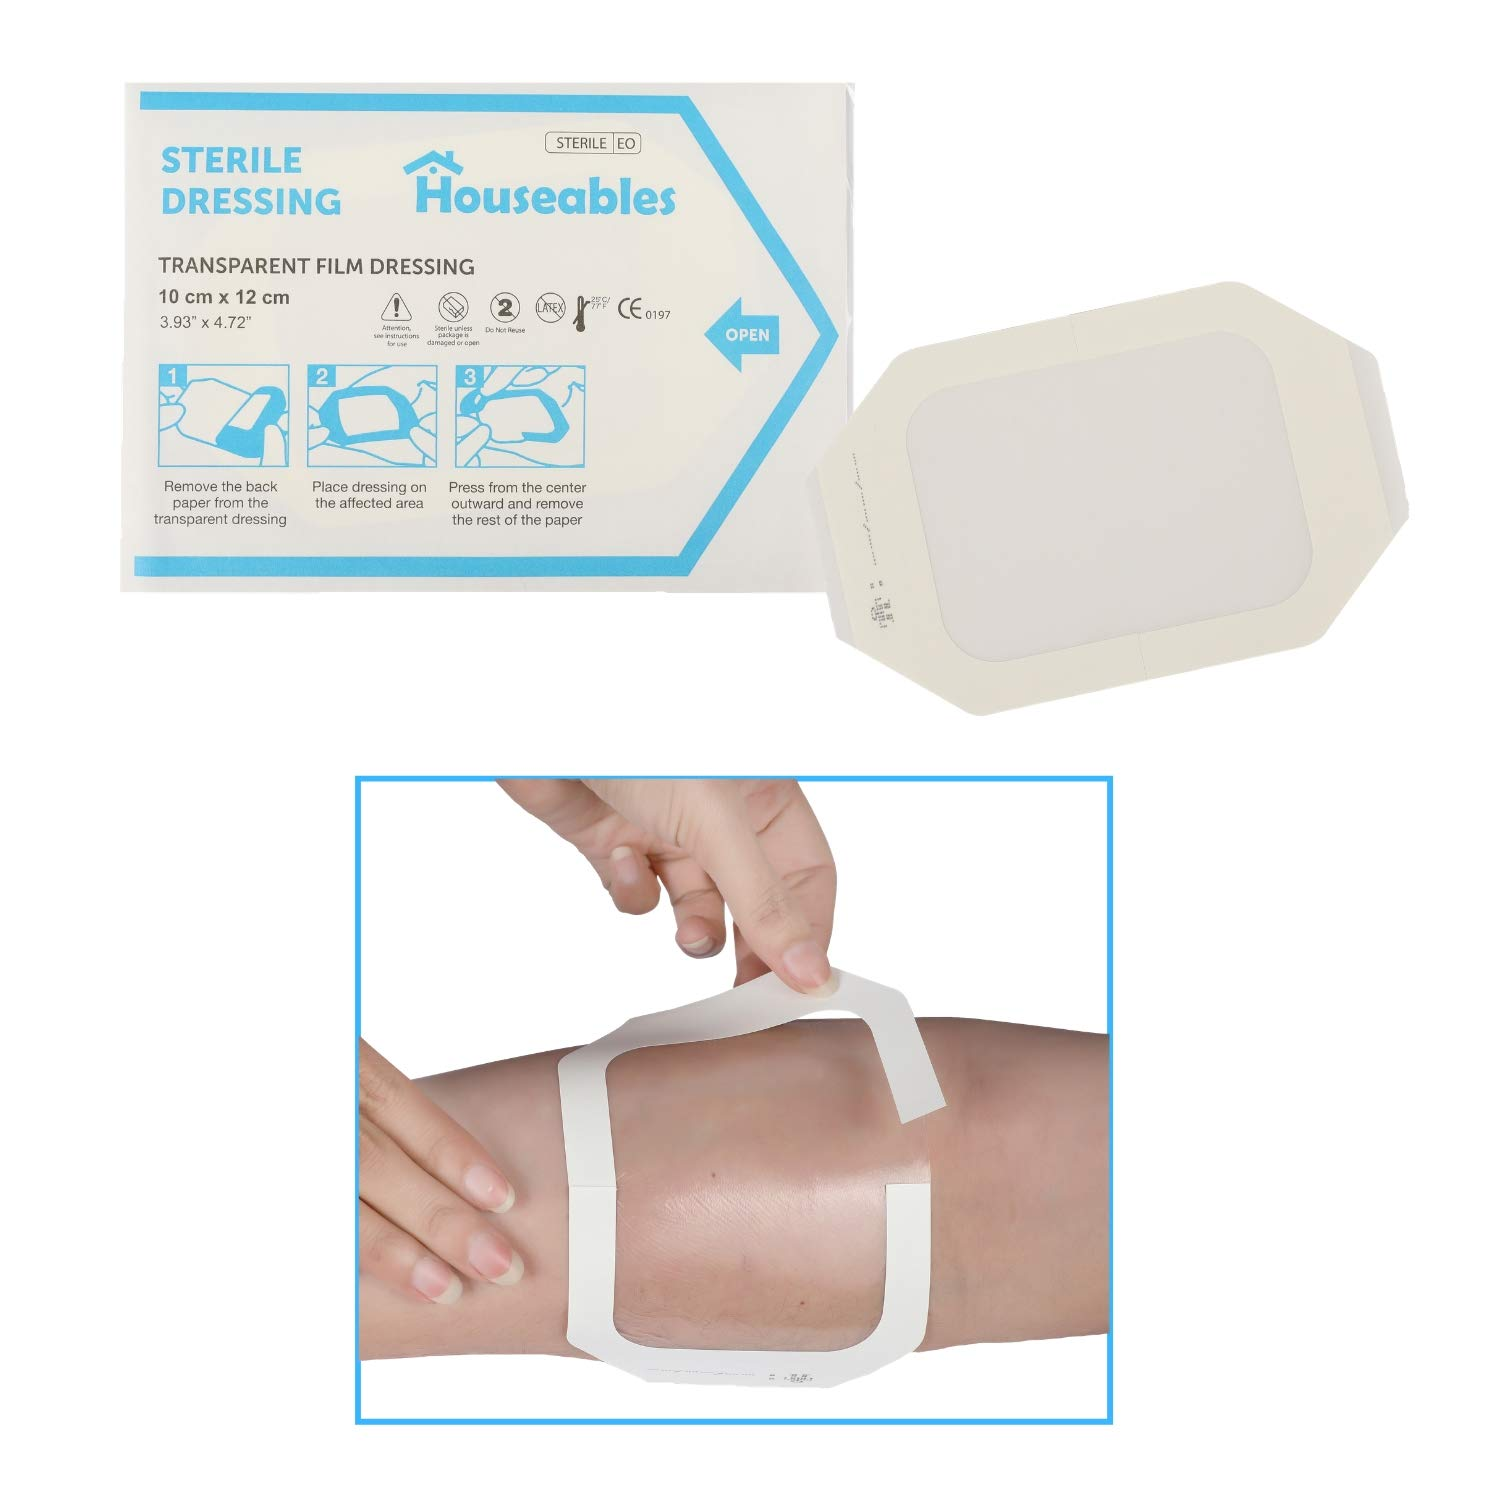 Houseables Transparent Dressing, Waterproof Wound Seal, 3.93''x 4.72'', 50 Pack, Clear, Film, Shower Shield Dressings, Large Bandages, Surgical, for Tattoo Protection, Wounds, Dialysis Catheter Shields